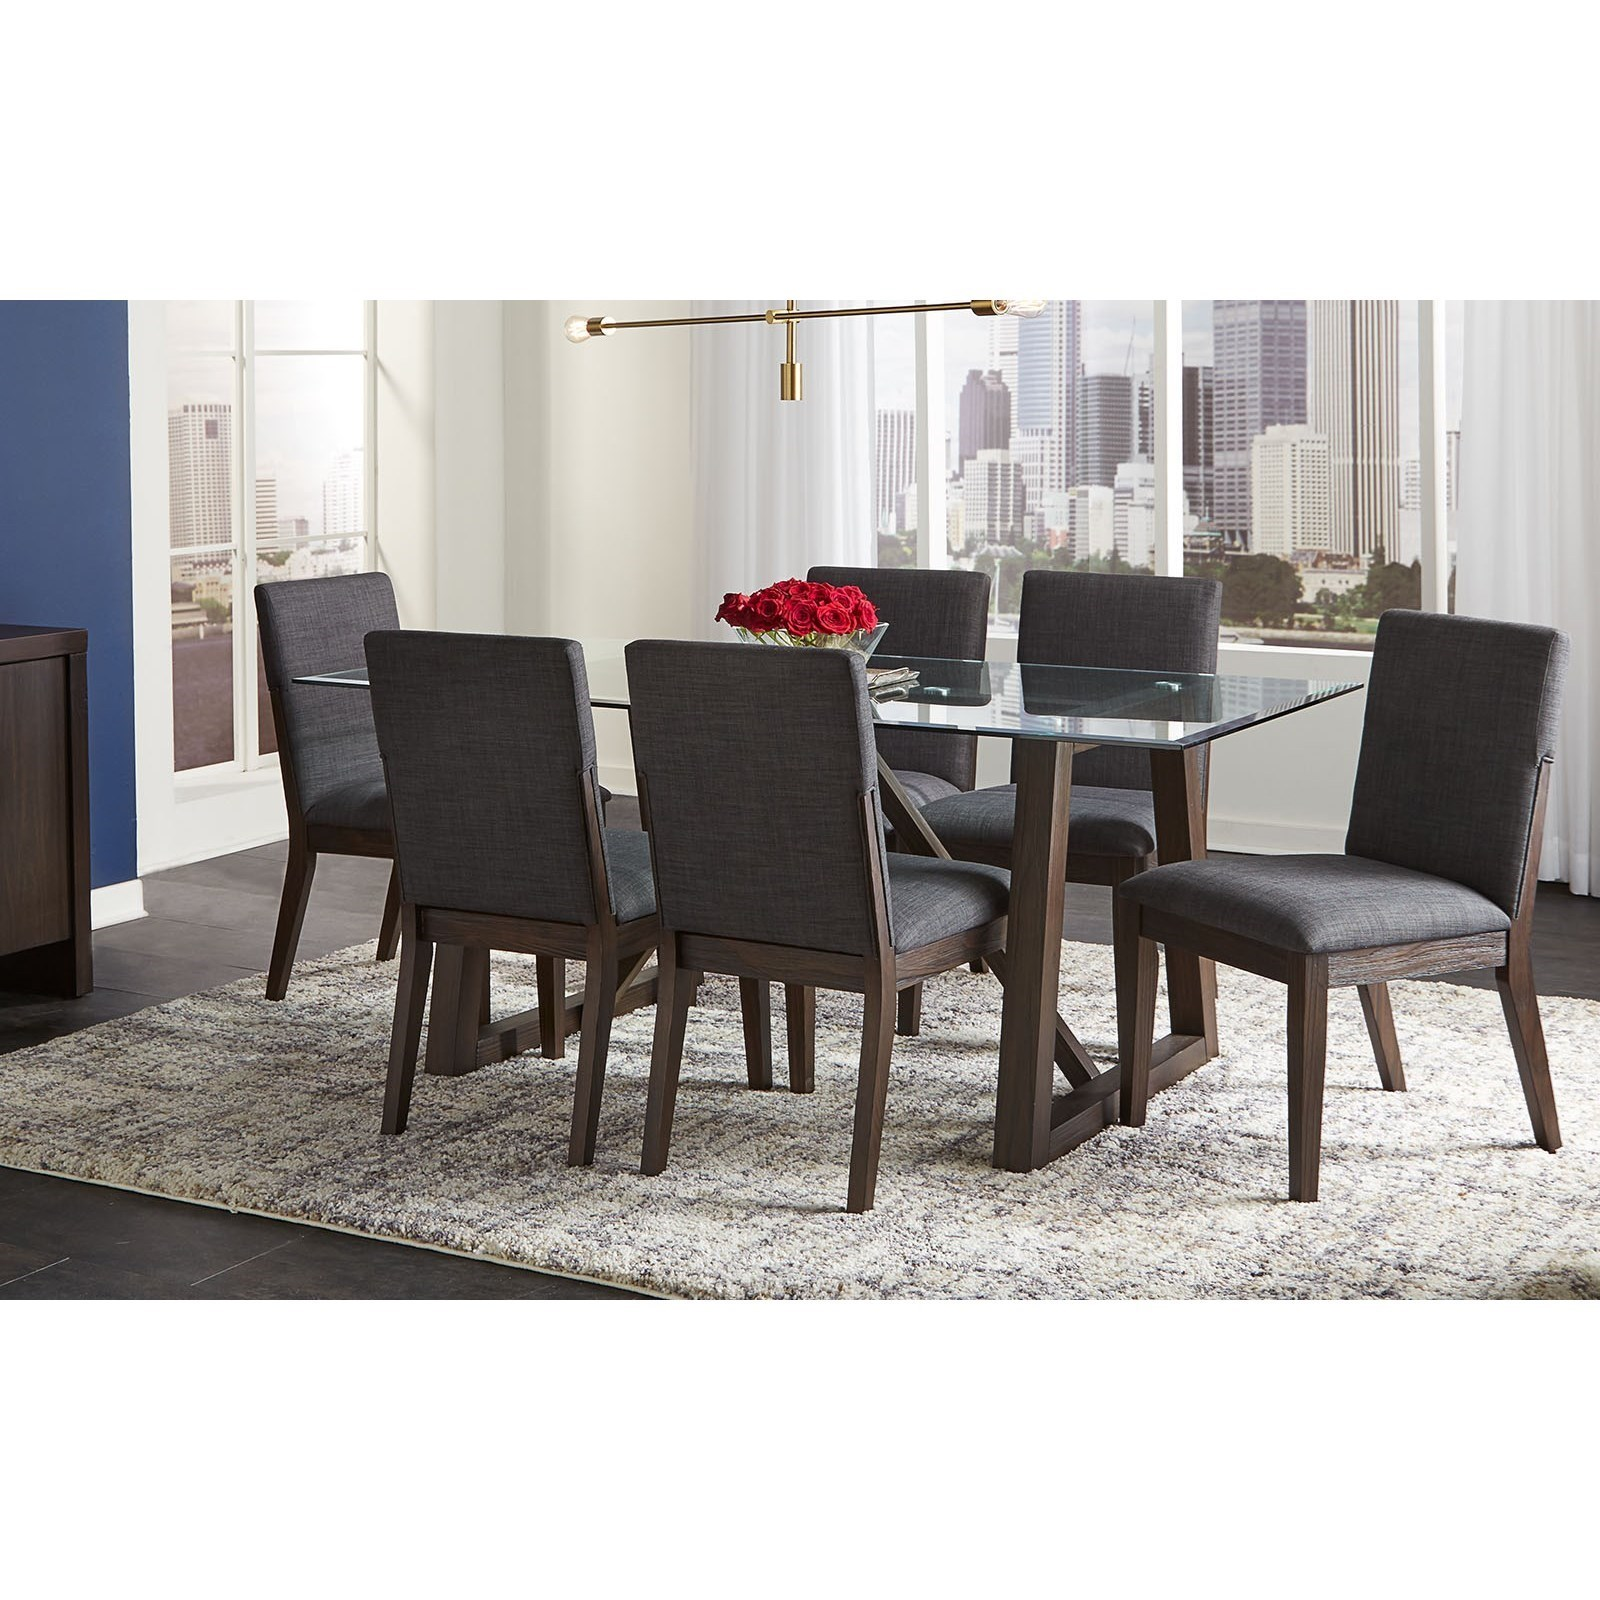 Picture of: Aamerica Palm Canyon 7 Piece Contemporary Dining Room Table Set With Glass Table Top Wayside Furniture Dining 7 Or More Piece Sets